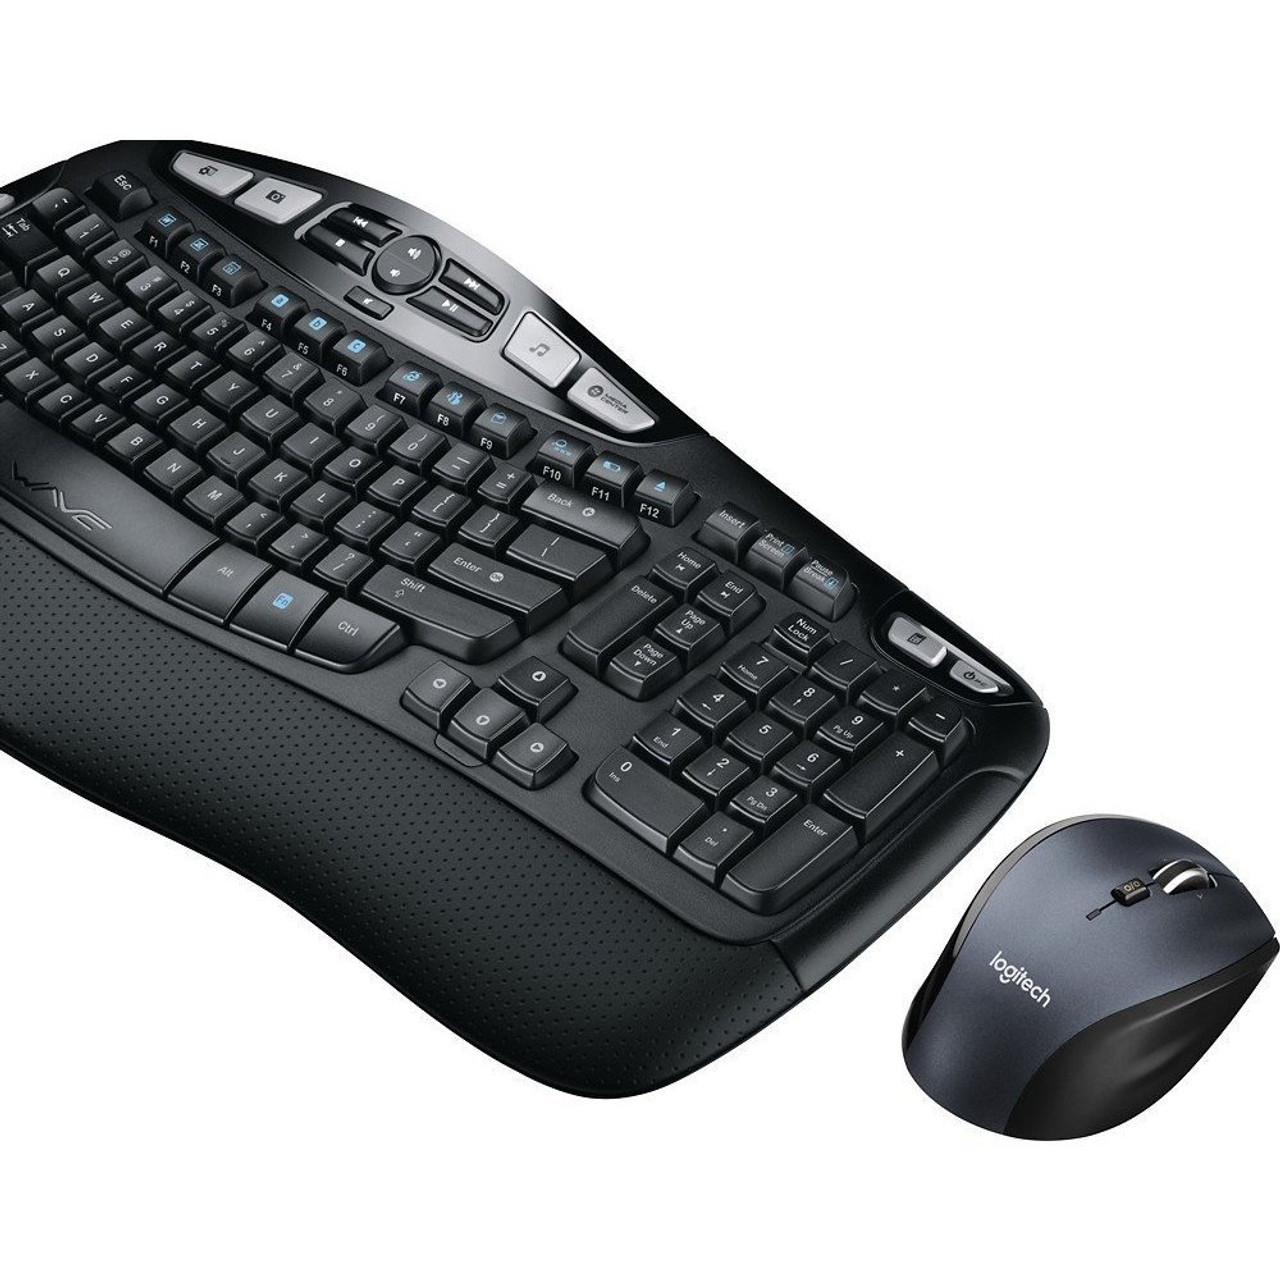 Logitech MK570 Comfort Wave Wireless Keyboard and Optical Mouse - Refurbished